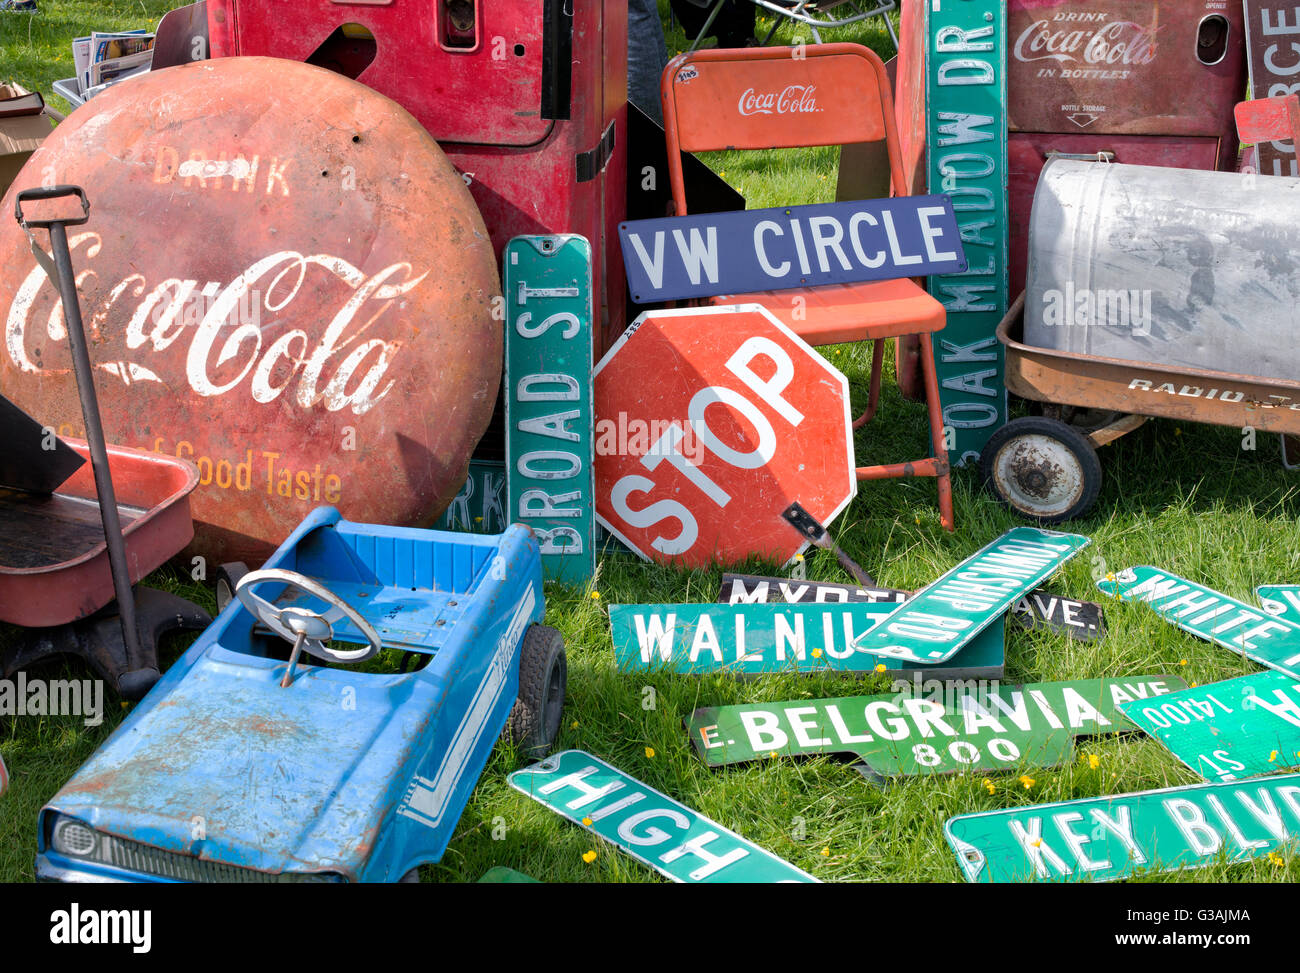 Old american street signs and collectibles at a car show autojumble. UK - Stock Image